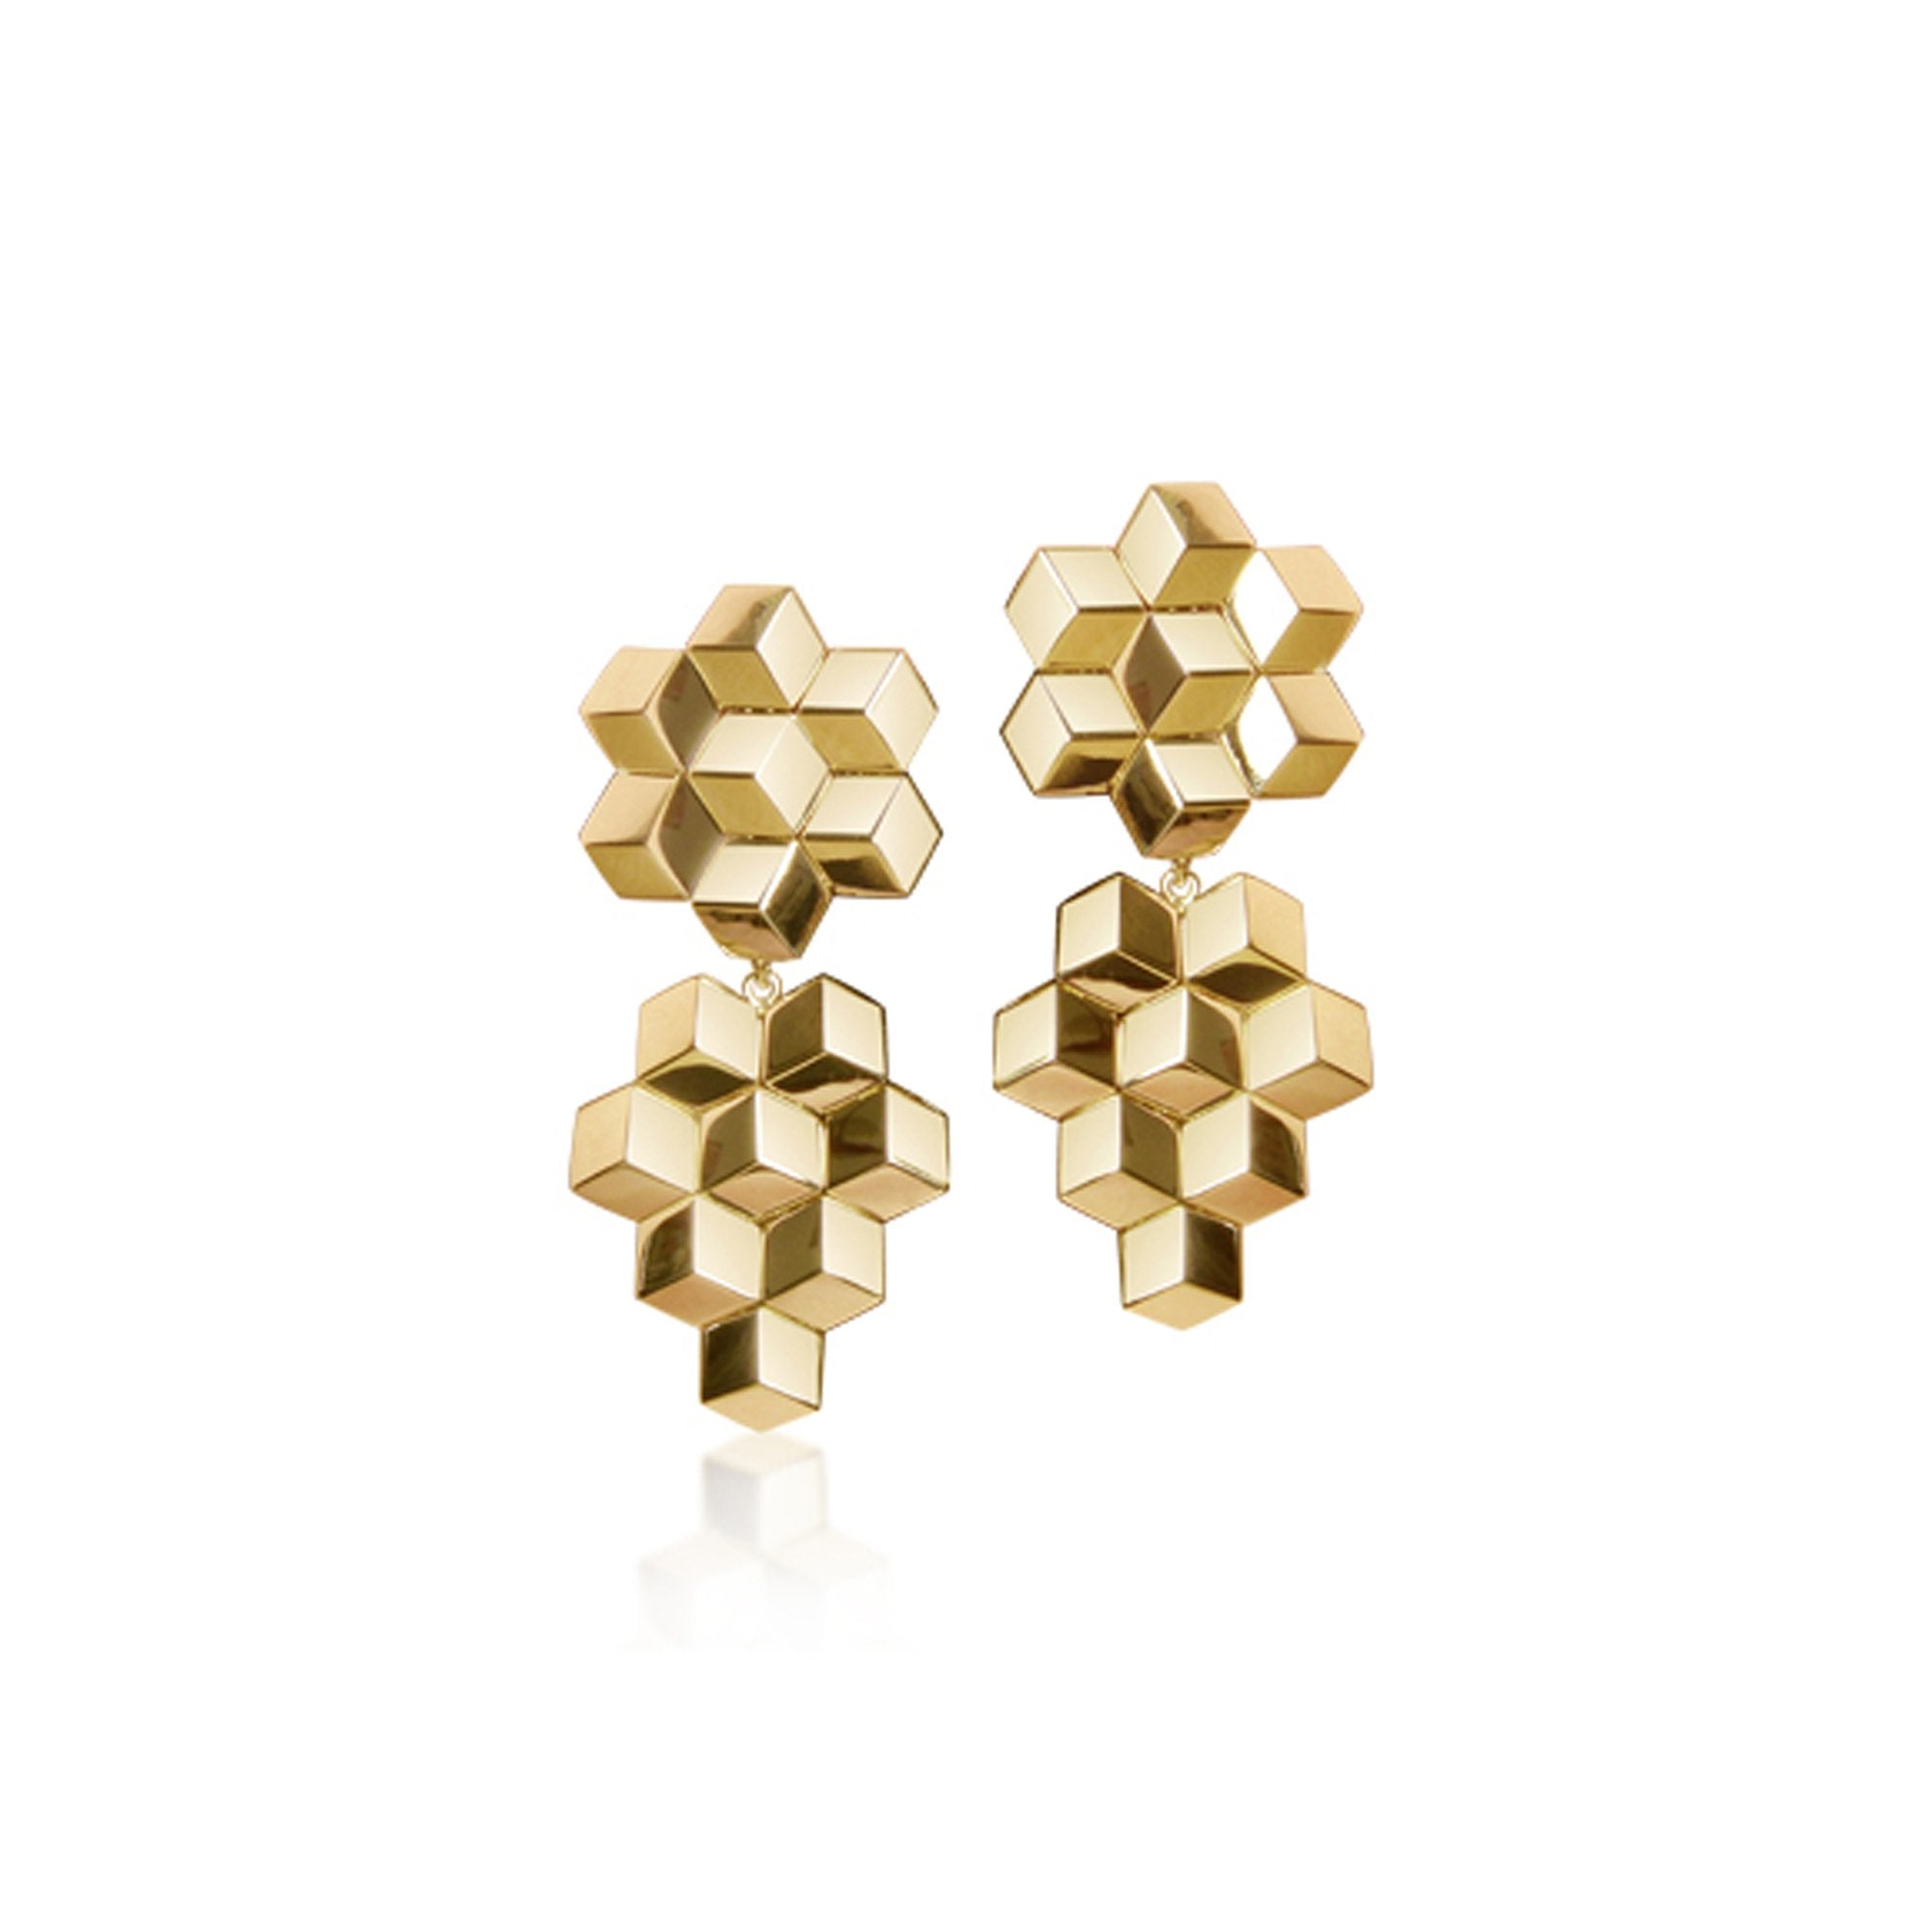 Yellow Gold 'Brillante®' Earrings, Petite - Paolo Costagli - 1